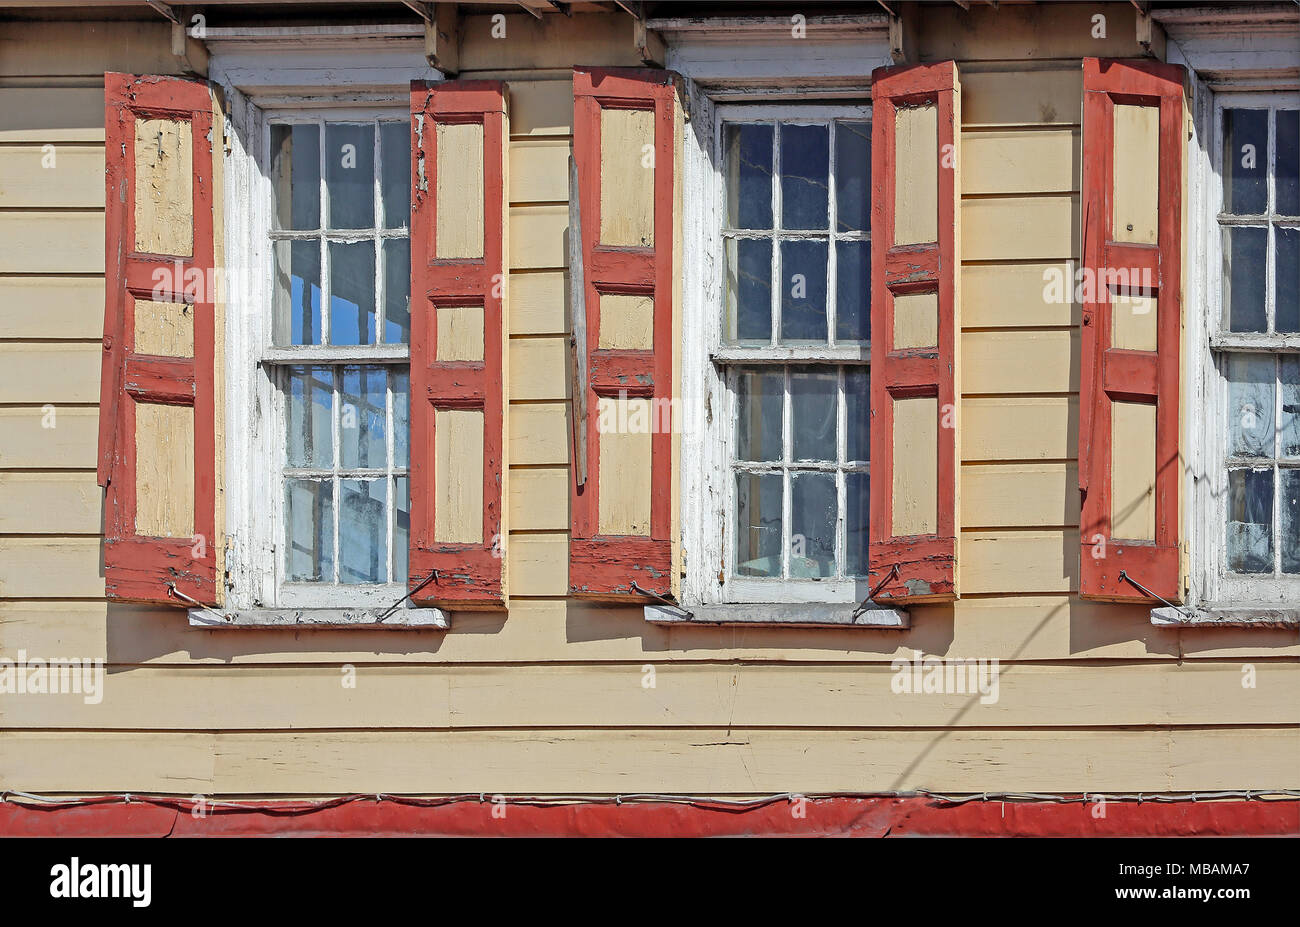 Rustic Building Detail With Tan Wooden Siding And Windows